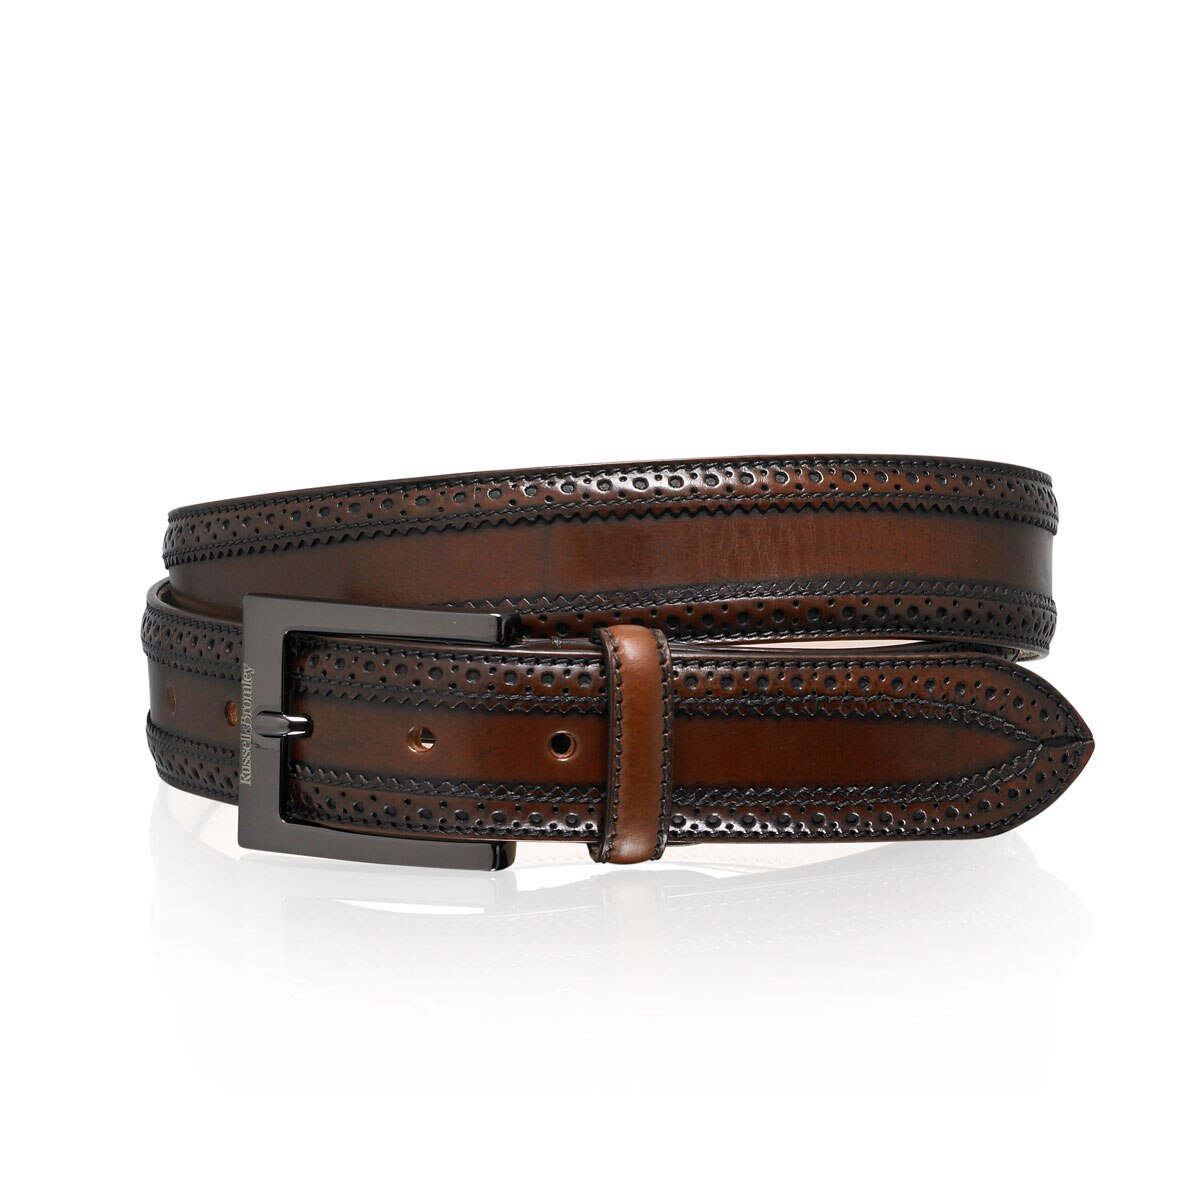 OAK Antique Brogue Belt